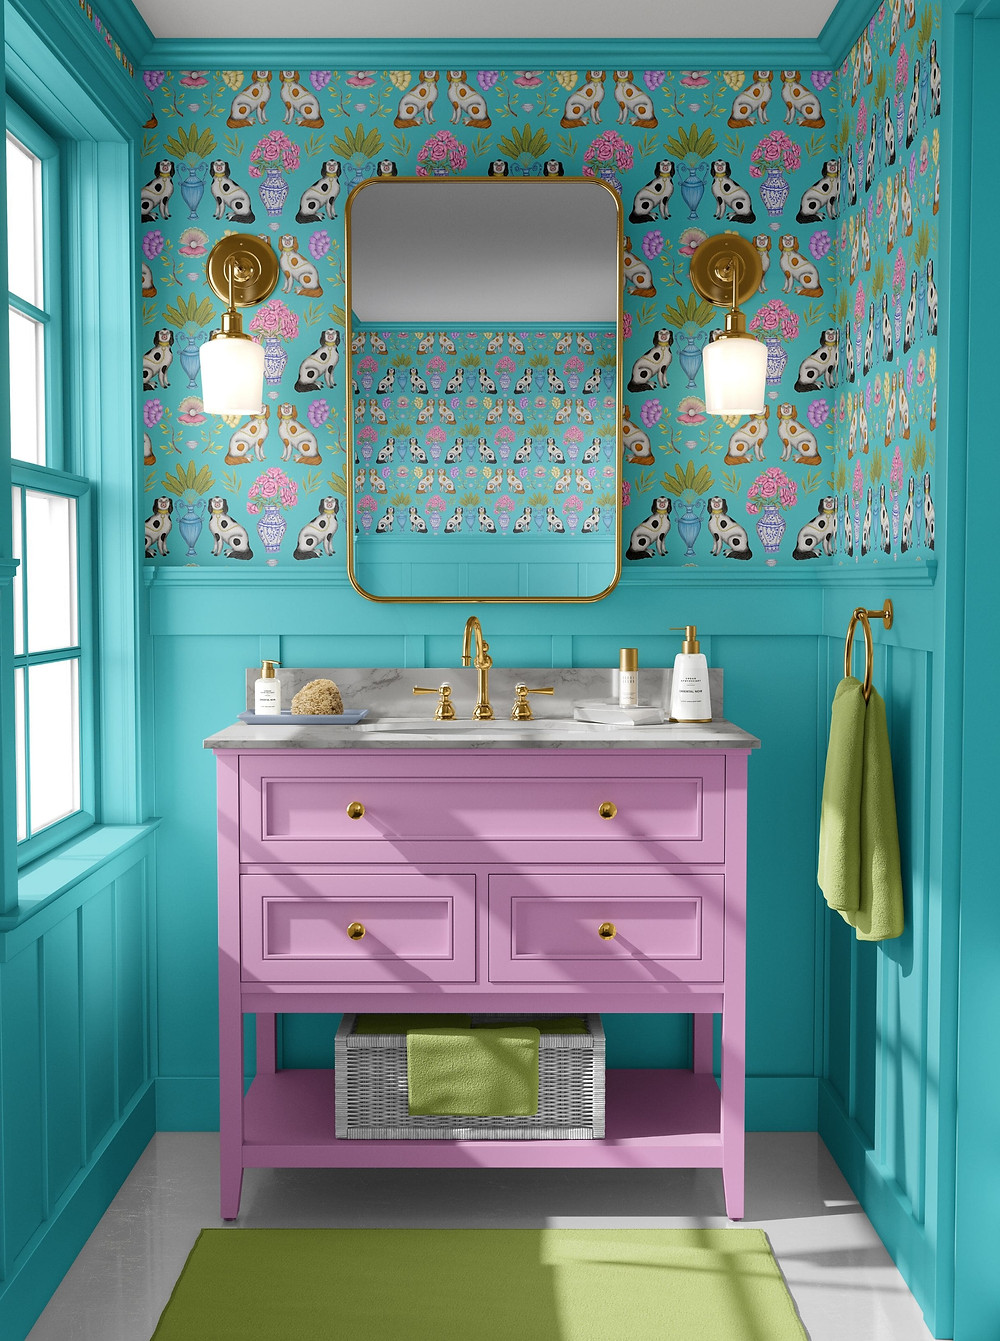 Small bathroom in mint green blue tongue and groove with pink vanity unit and colourful china dogs wallpaper from Catherine Rowe, brass mirrors and wall sconces